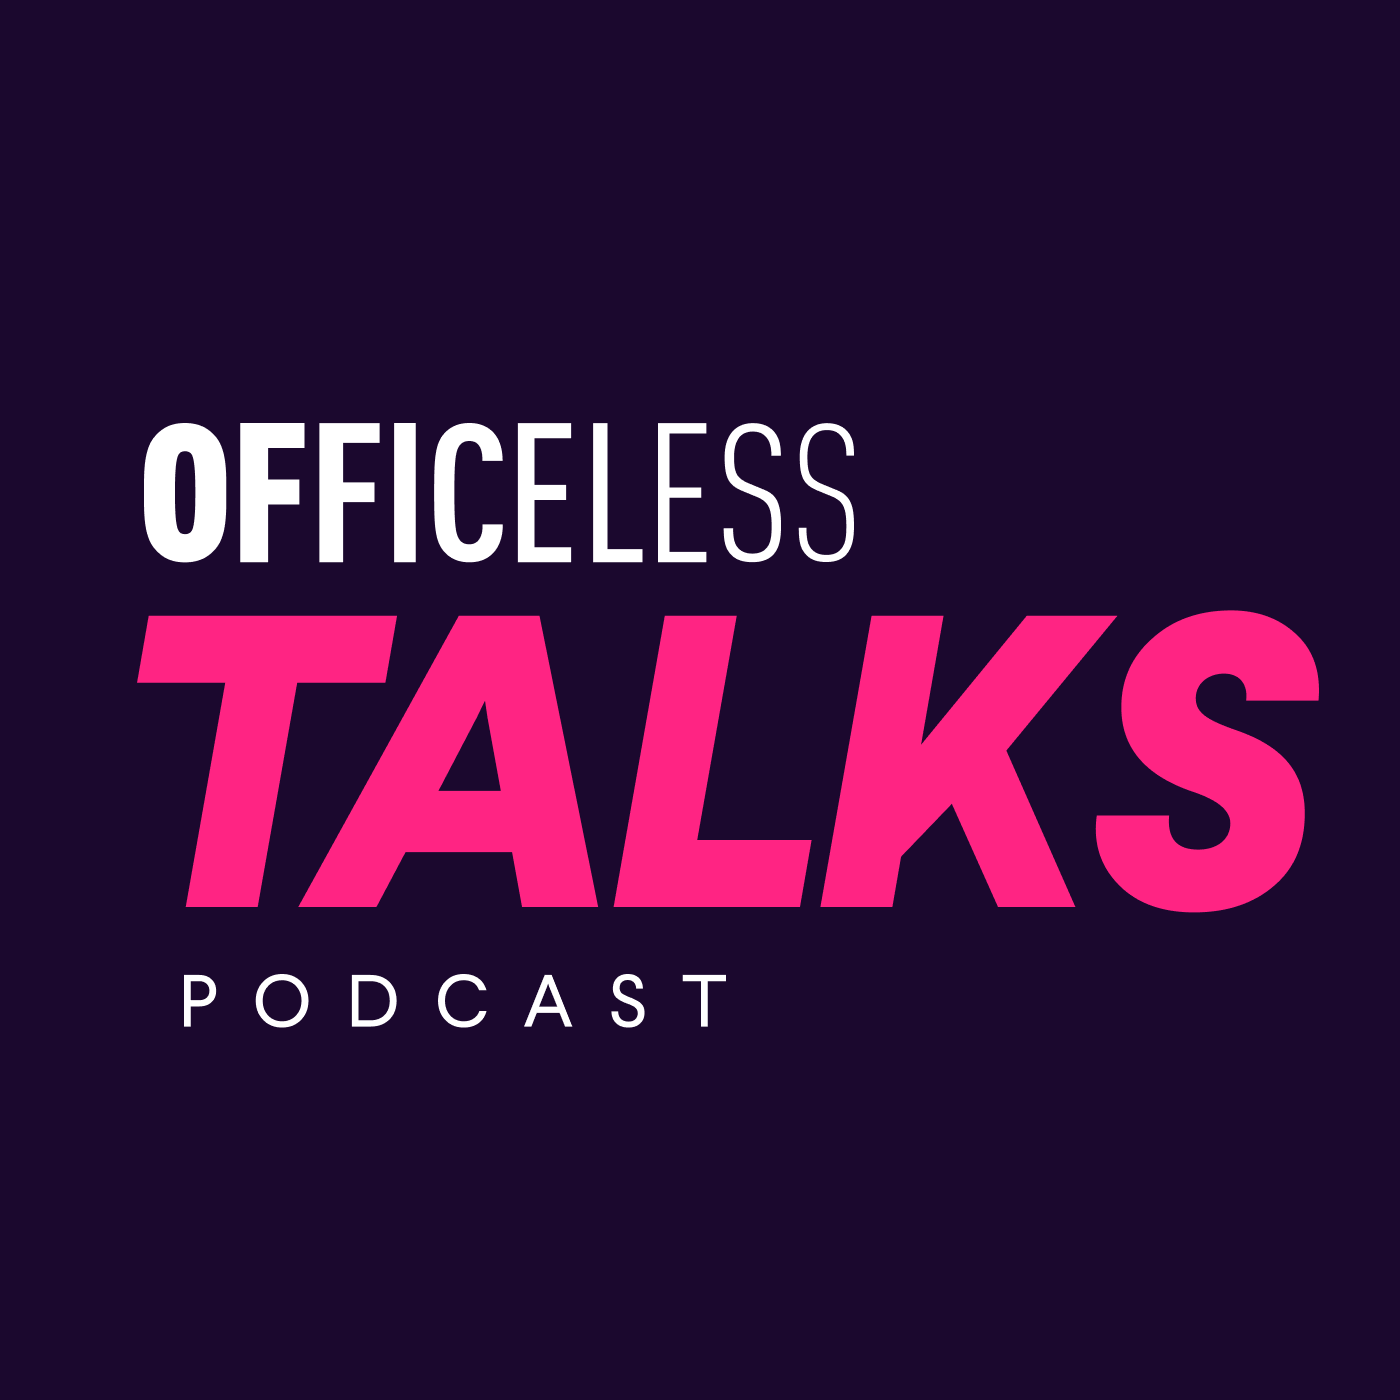 Podcast Officeless Talks